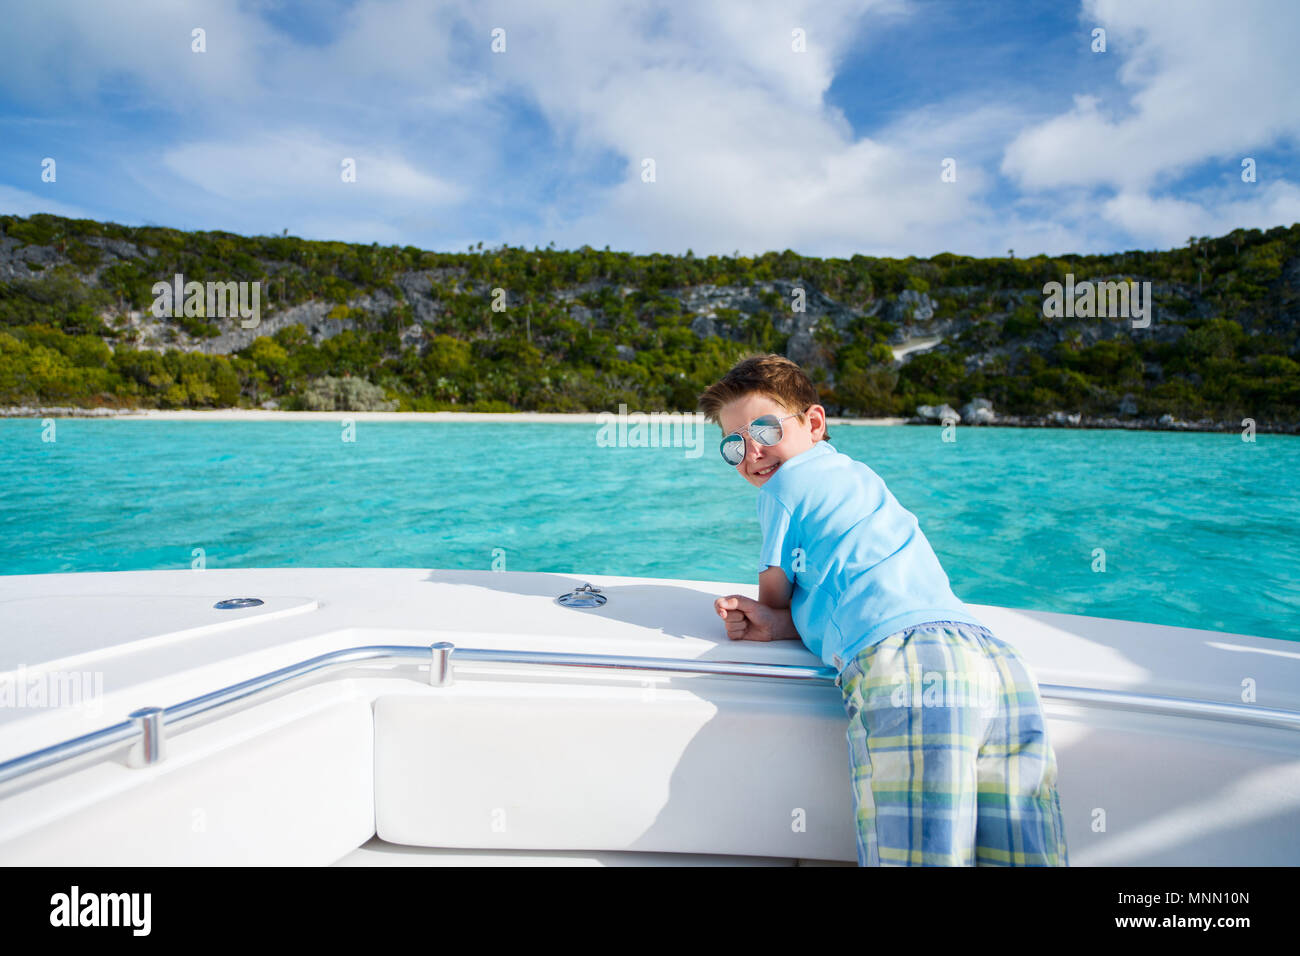 Little boy enjoying vacation on a luxury yacht or private tour boat Stock Photo